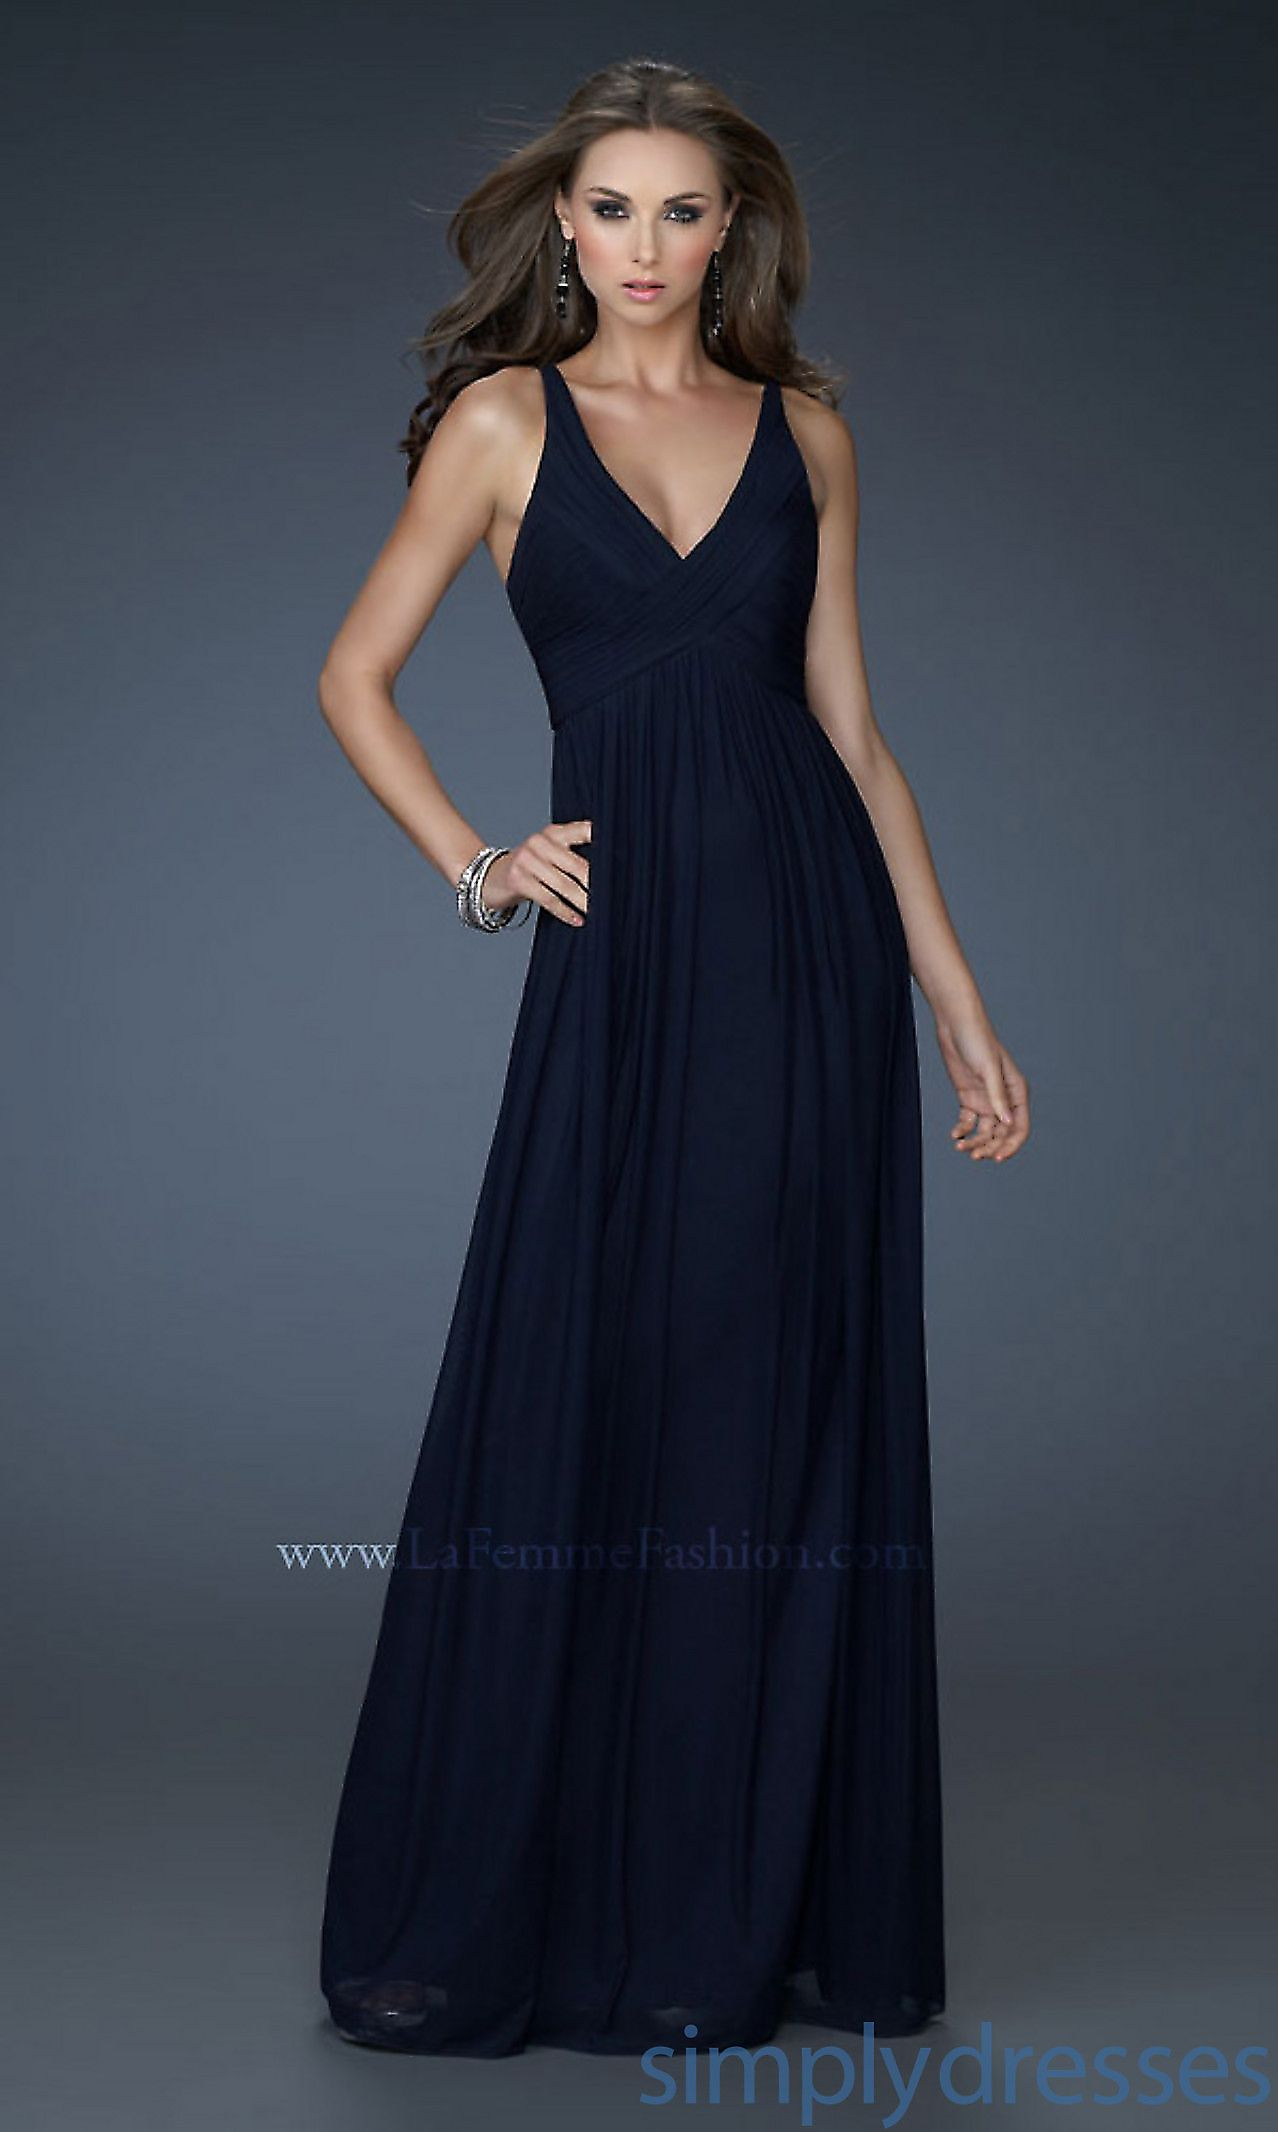 Beautiful simplicity long vneck navy gown lf